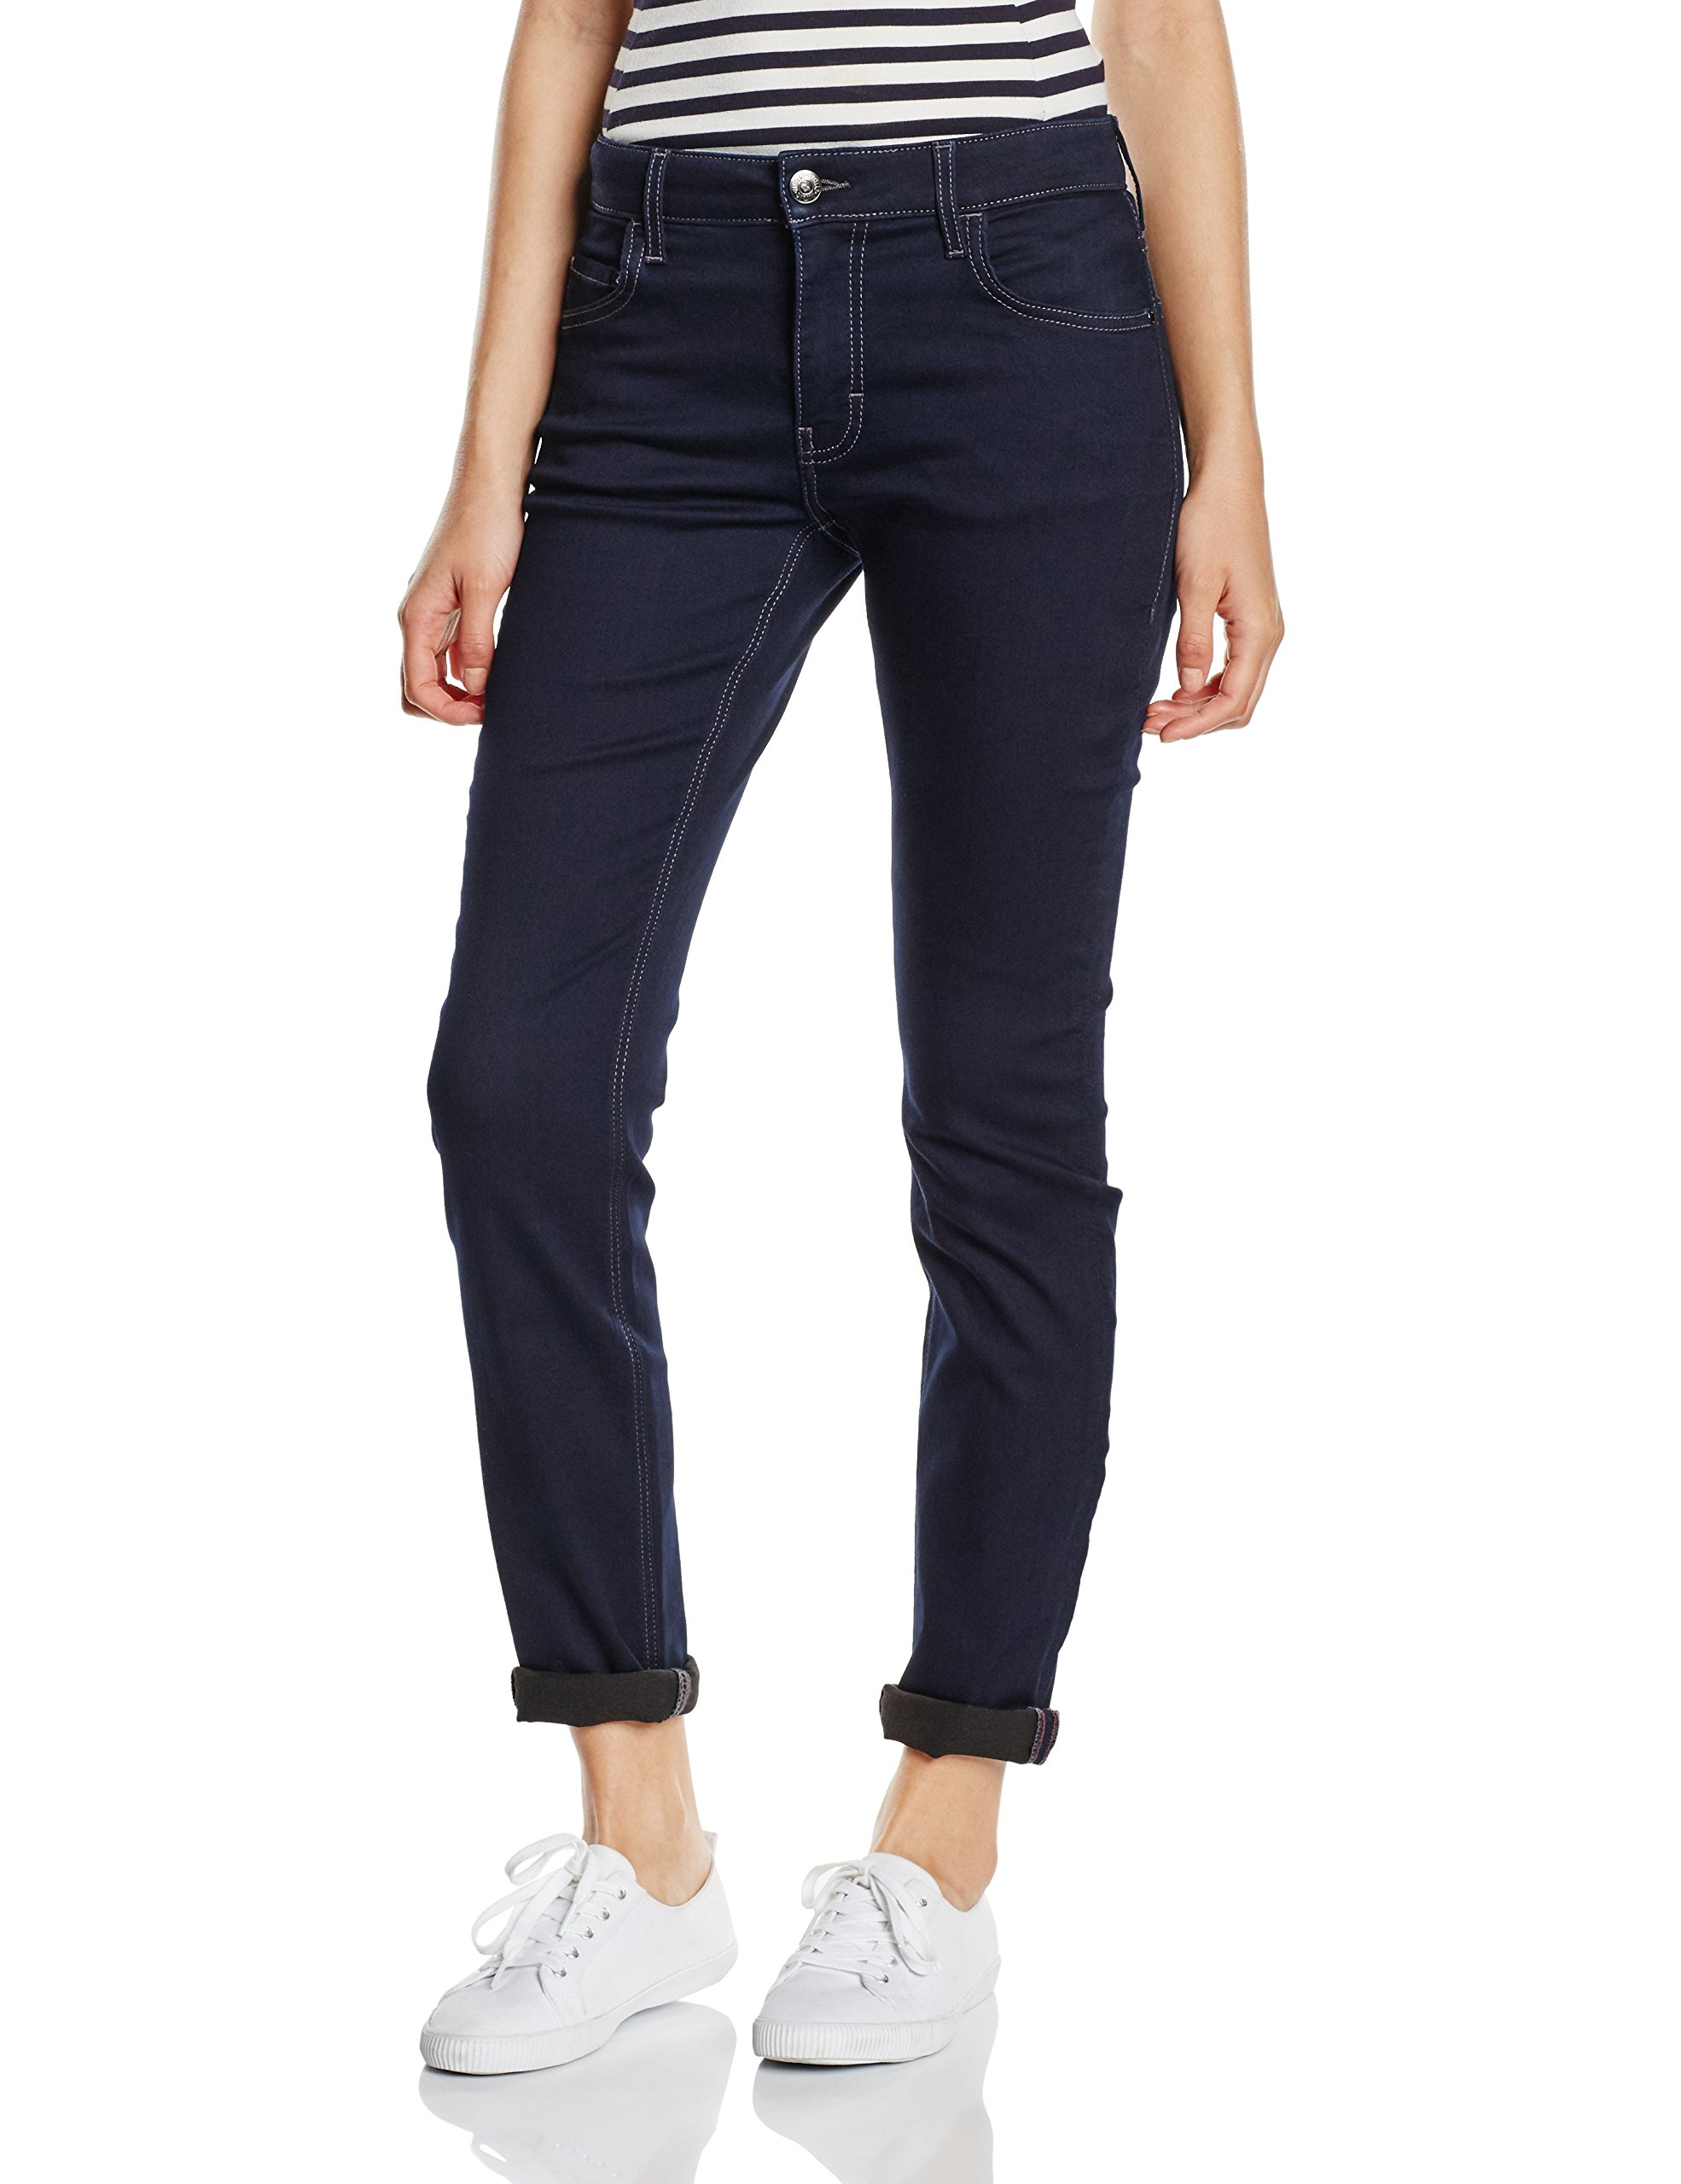 Washed Femme Mustang JeansBleu L 59032 W30 Perfect Softamp; blaurinse rCoWxBeEdQ